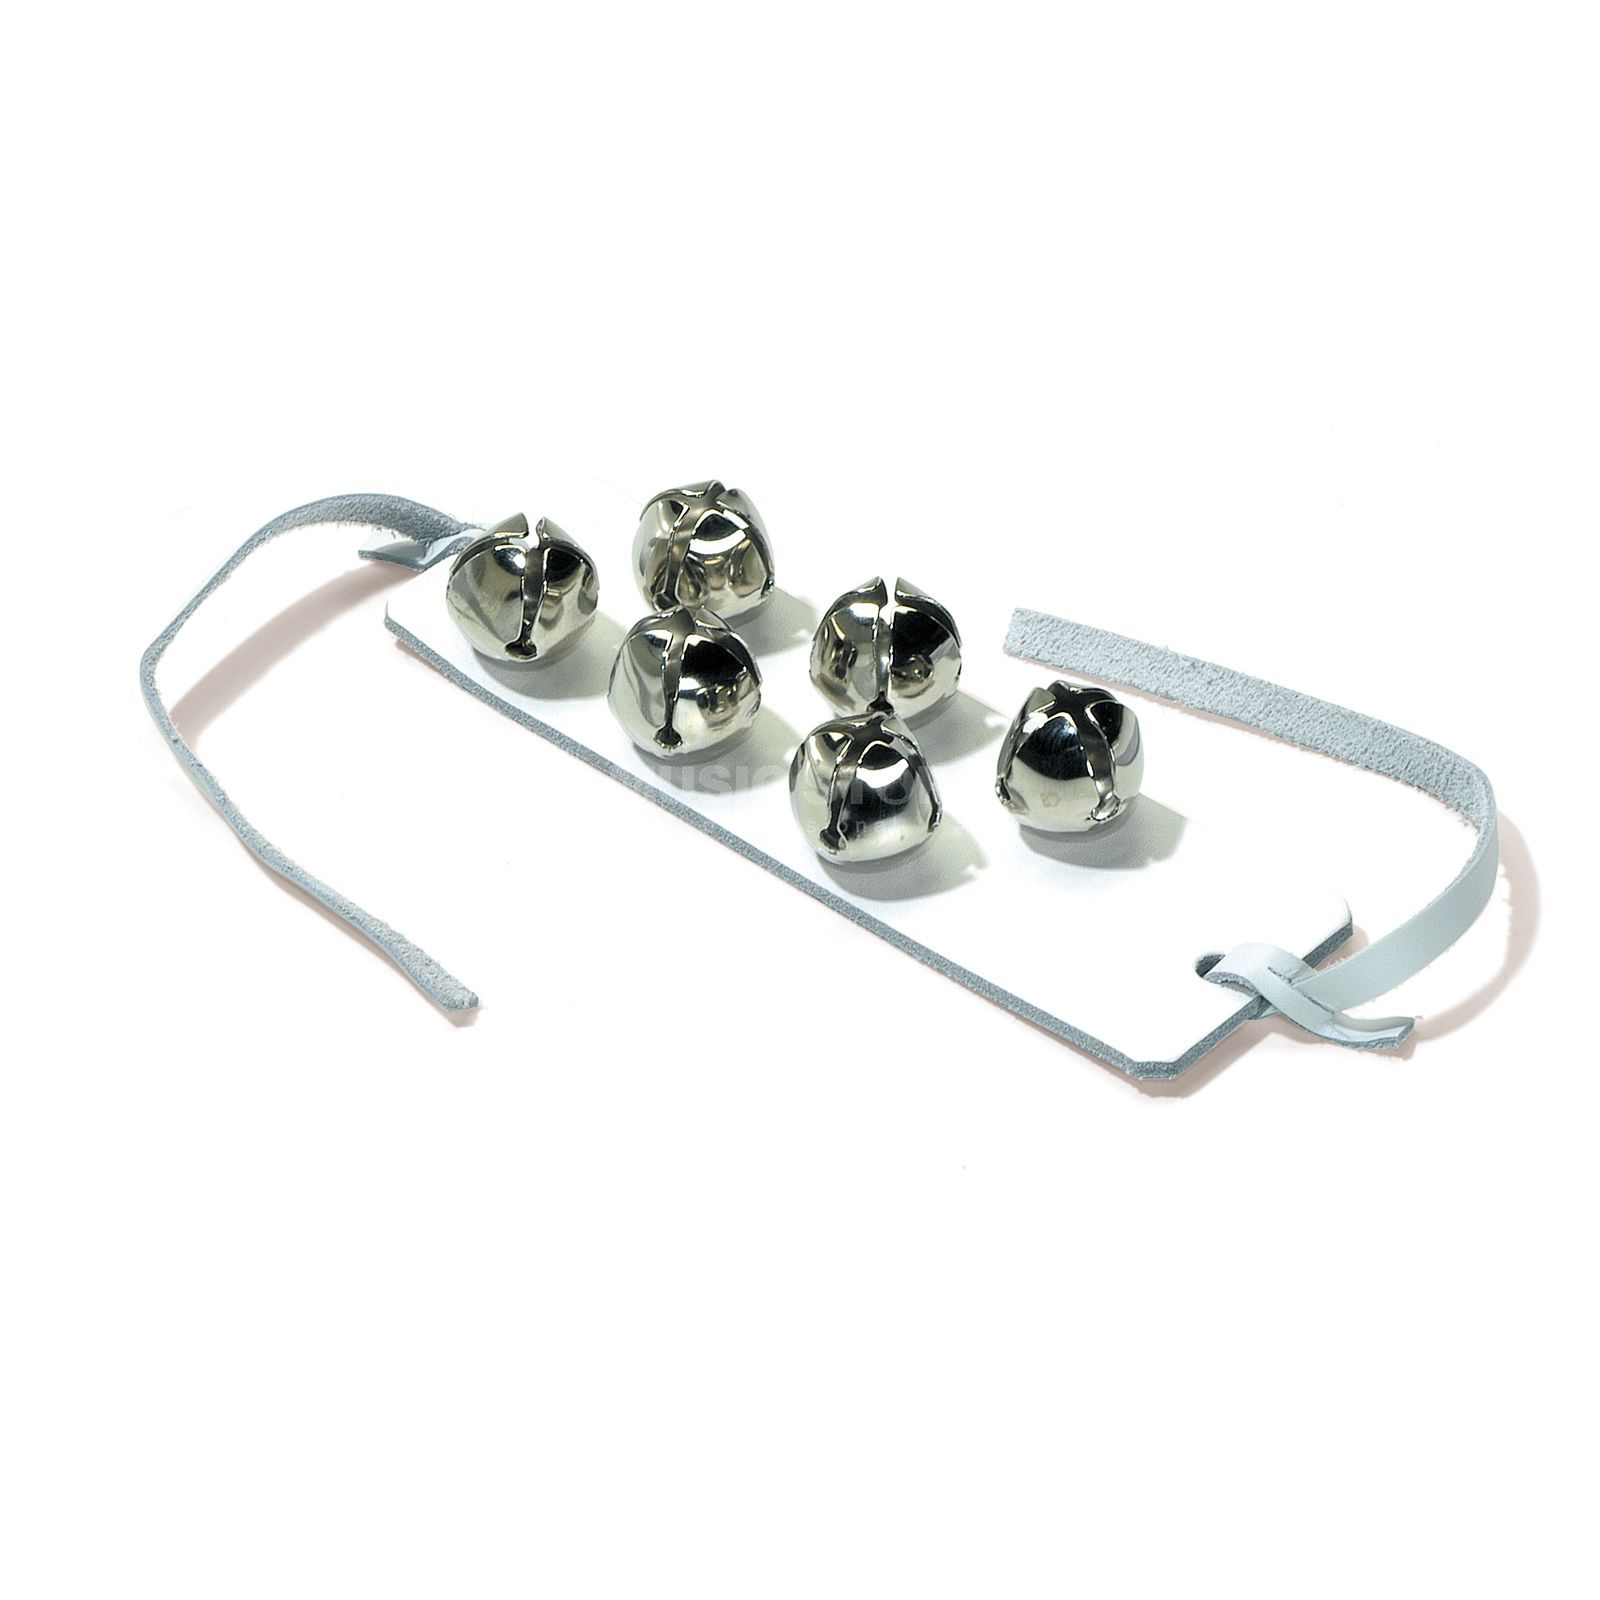 Sonor Wrist Bells V4001,  Product Image